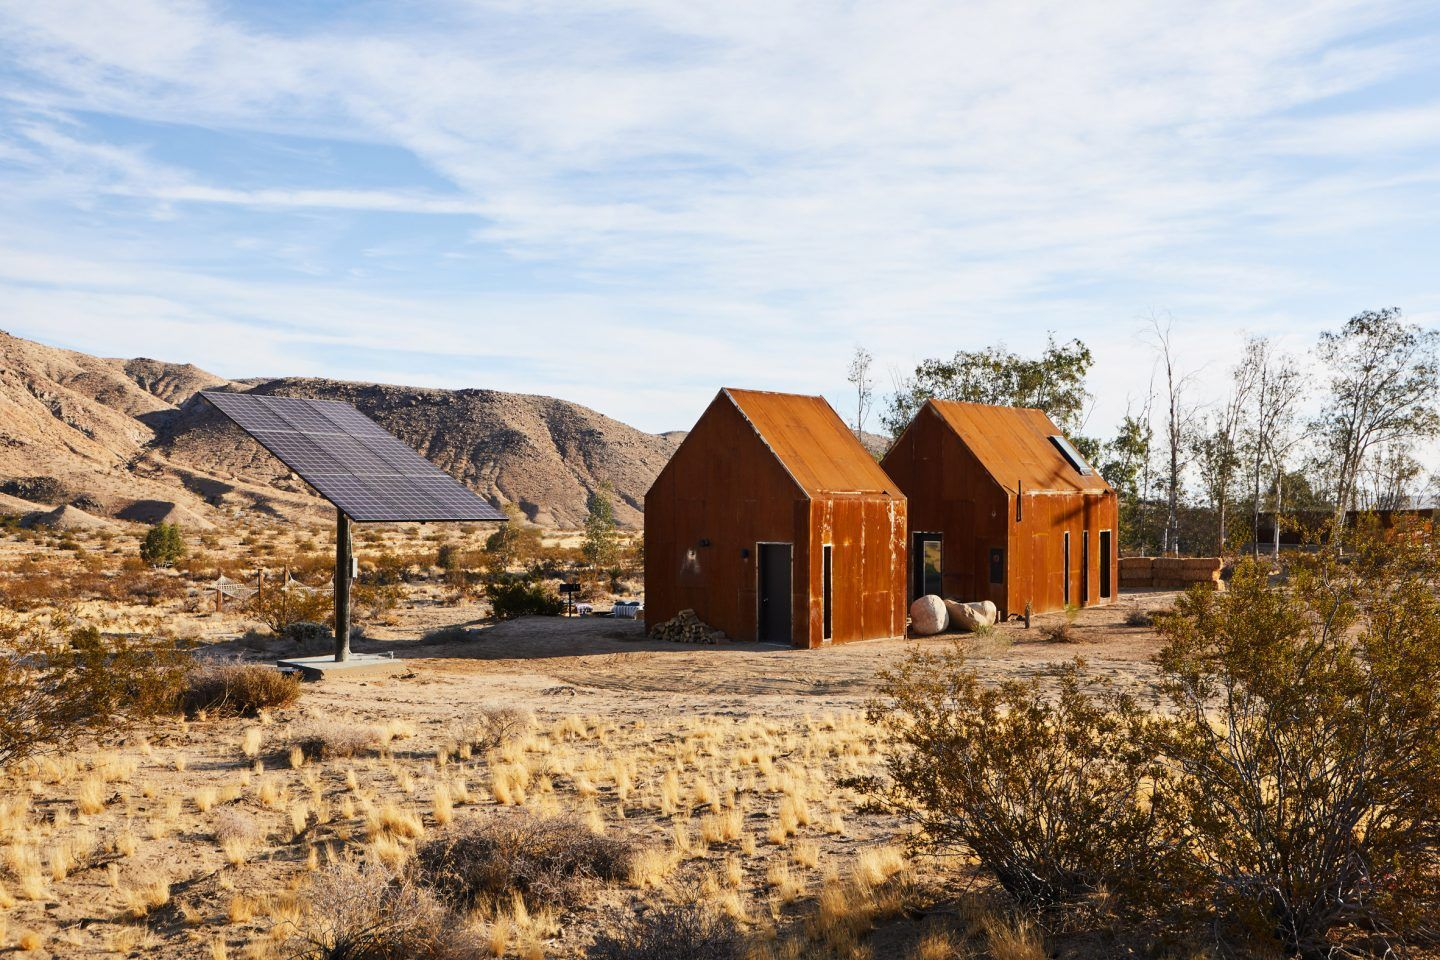 IGNANT-Architecture-Cohesion-Studio-Folly-Cabins-1